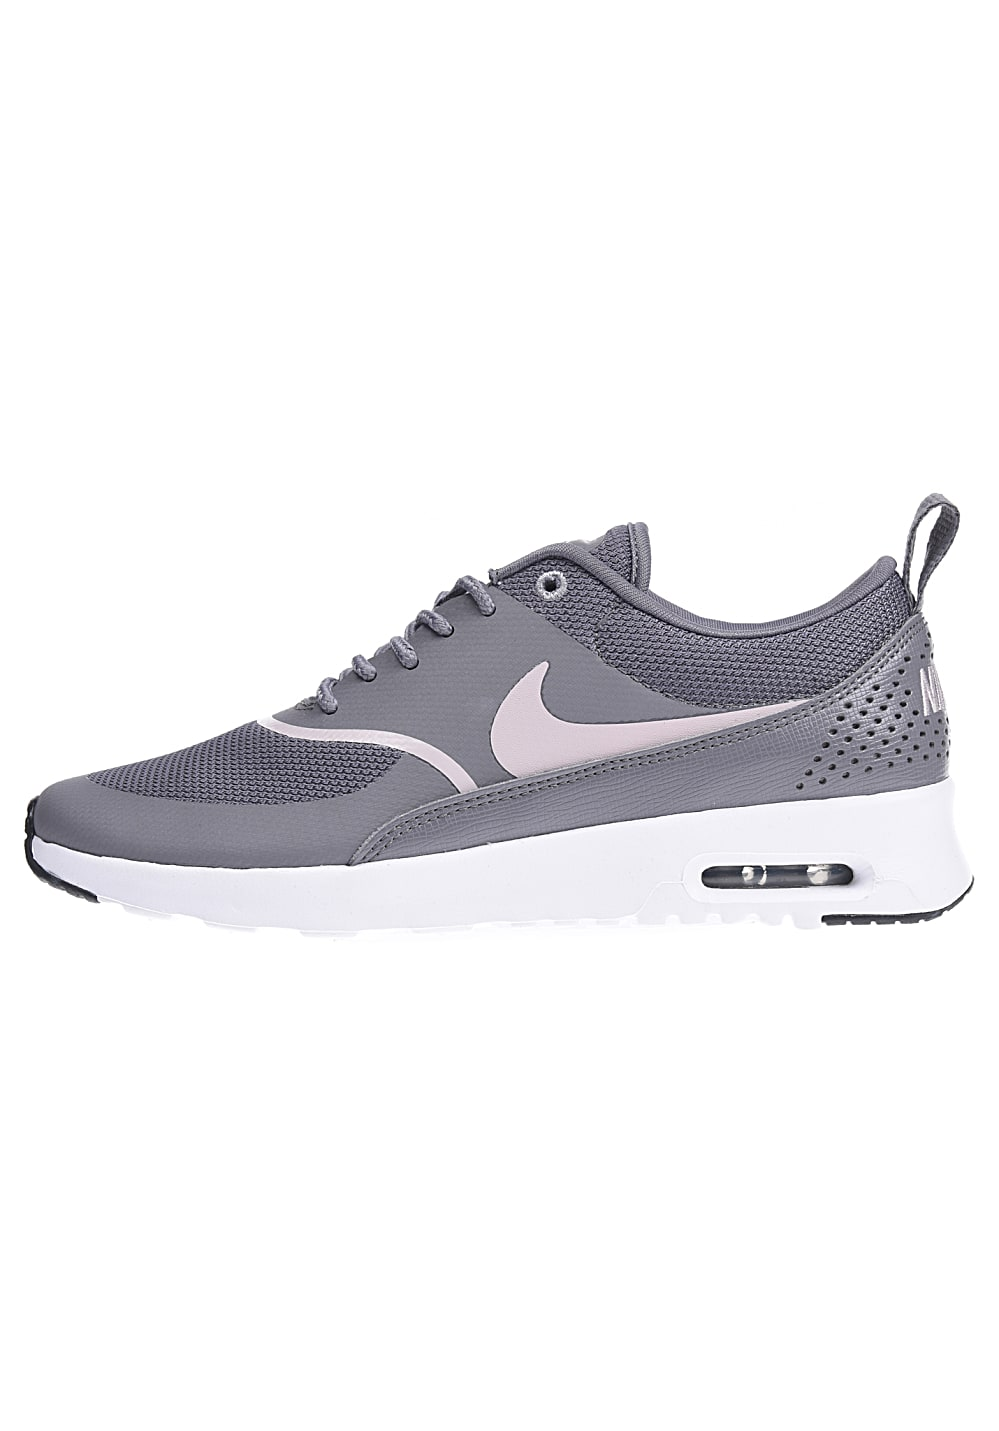 on feet at innovative design online retailer Schuhe Damen Nike Schuhe Grau Thea Grau Damen Thea Nike Nike